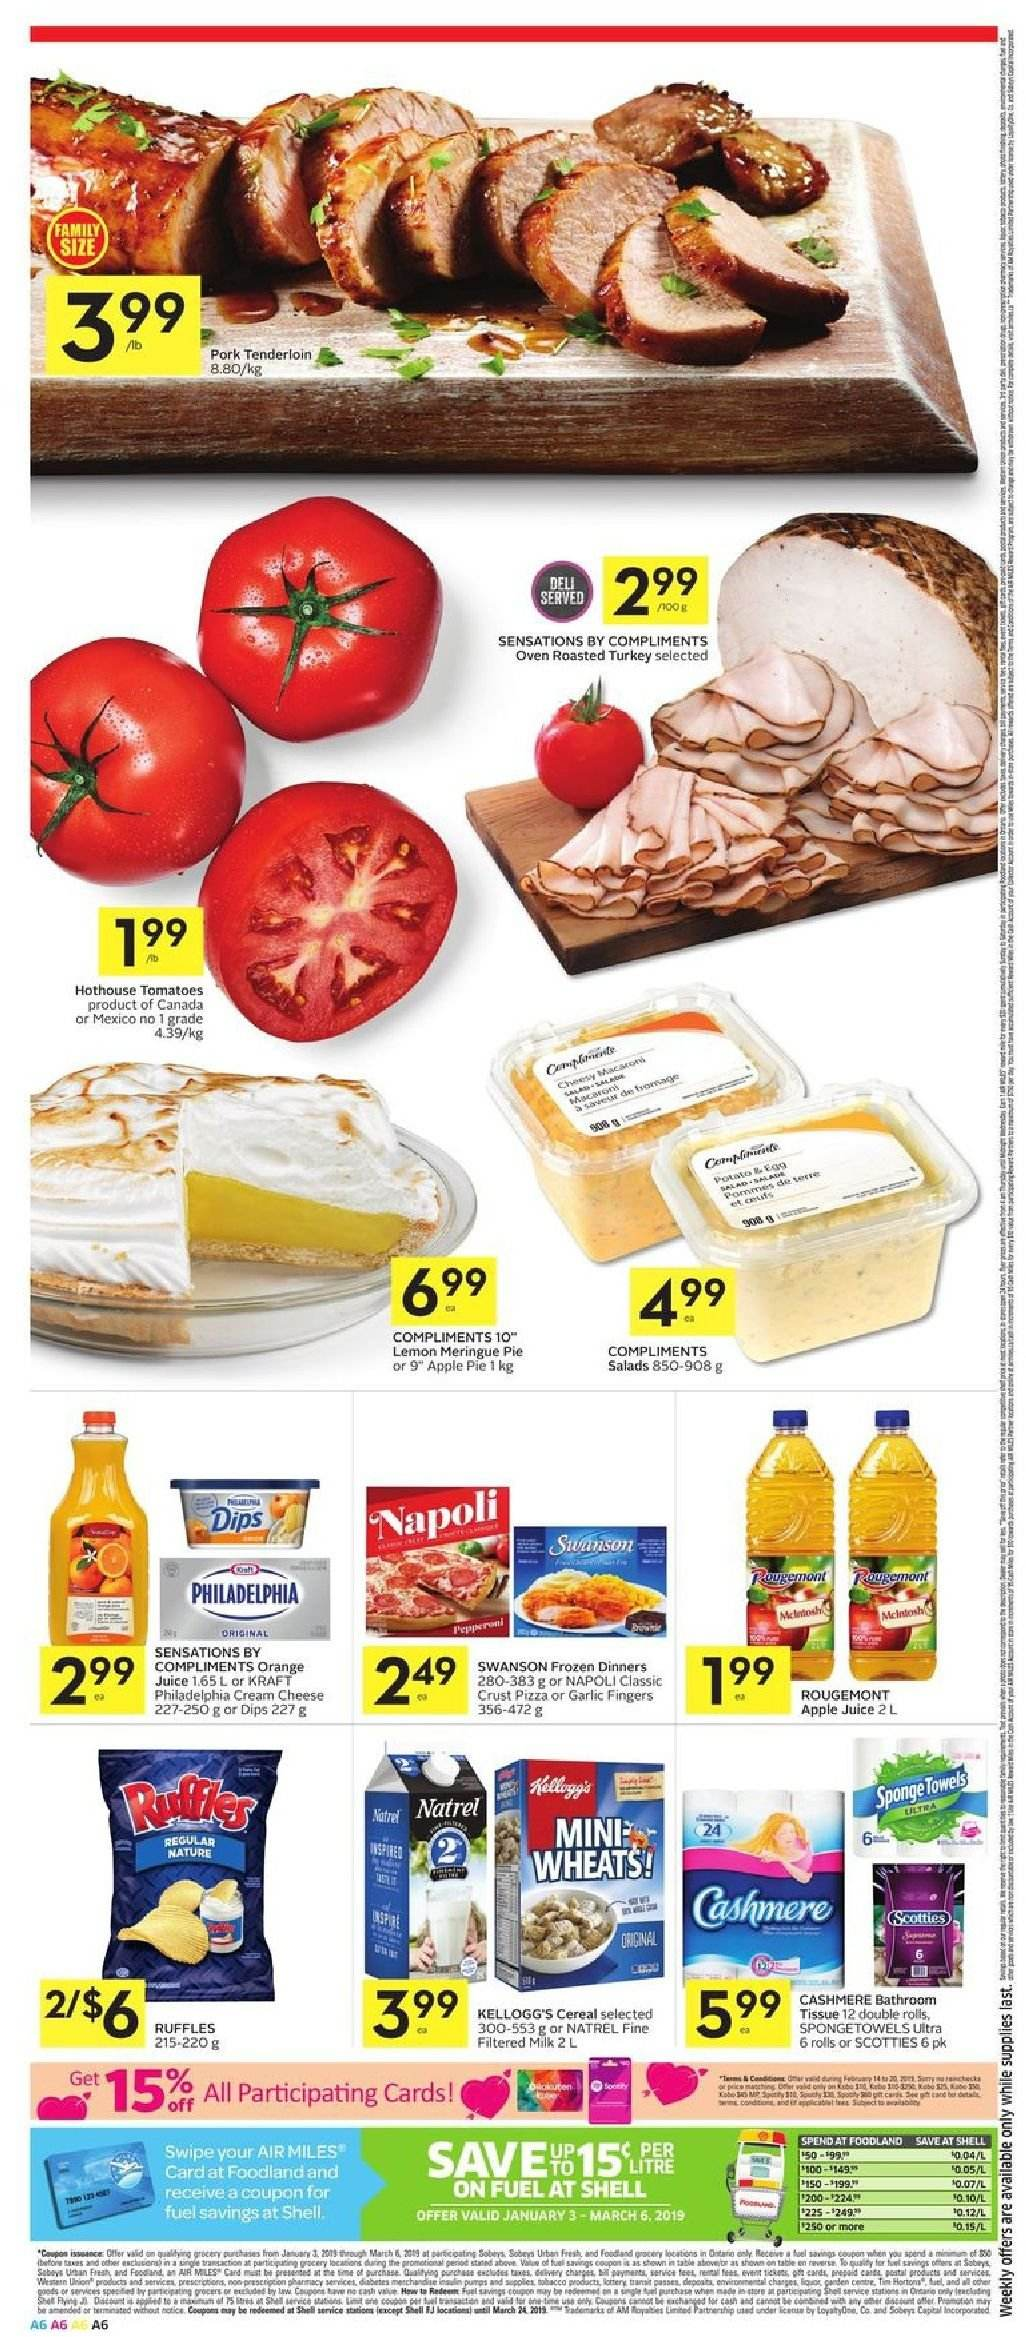 Foodland Flyer  - February 14, 2019 - February 20, 2019. Page 6.